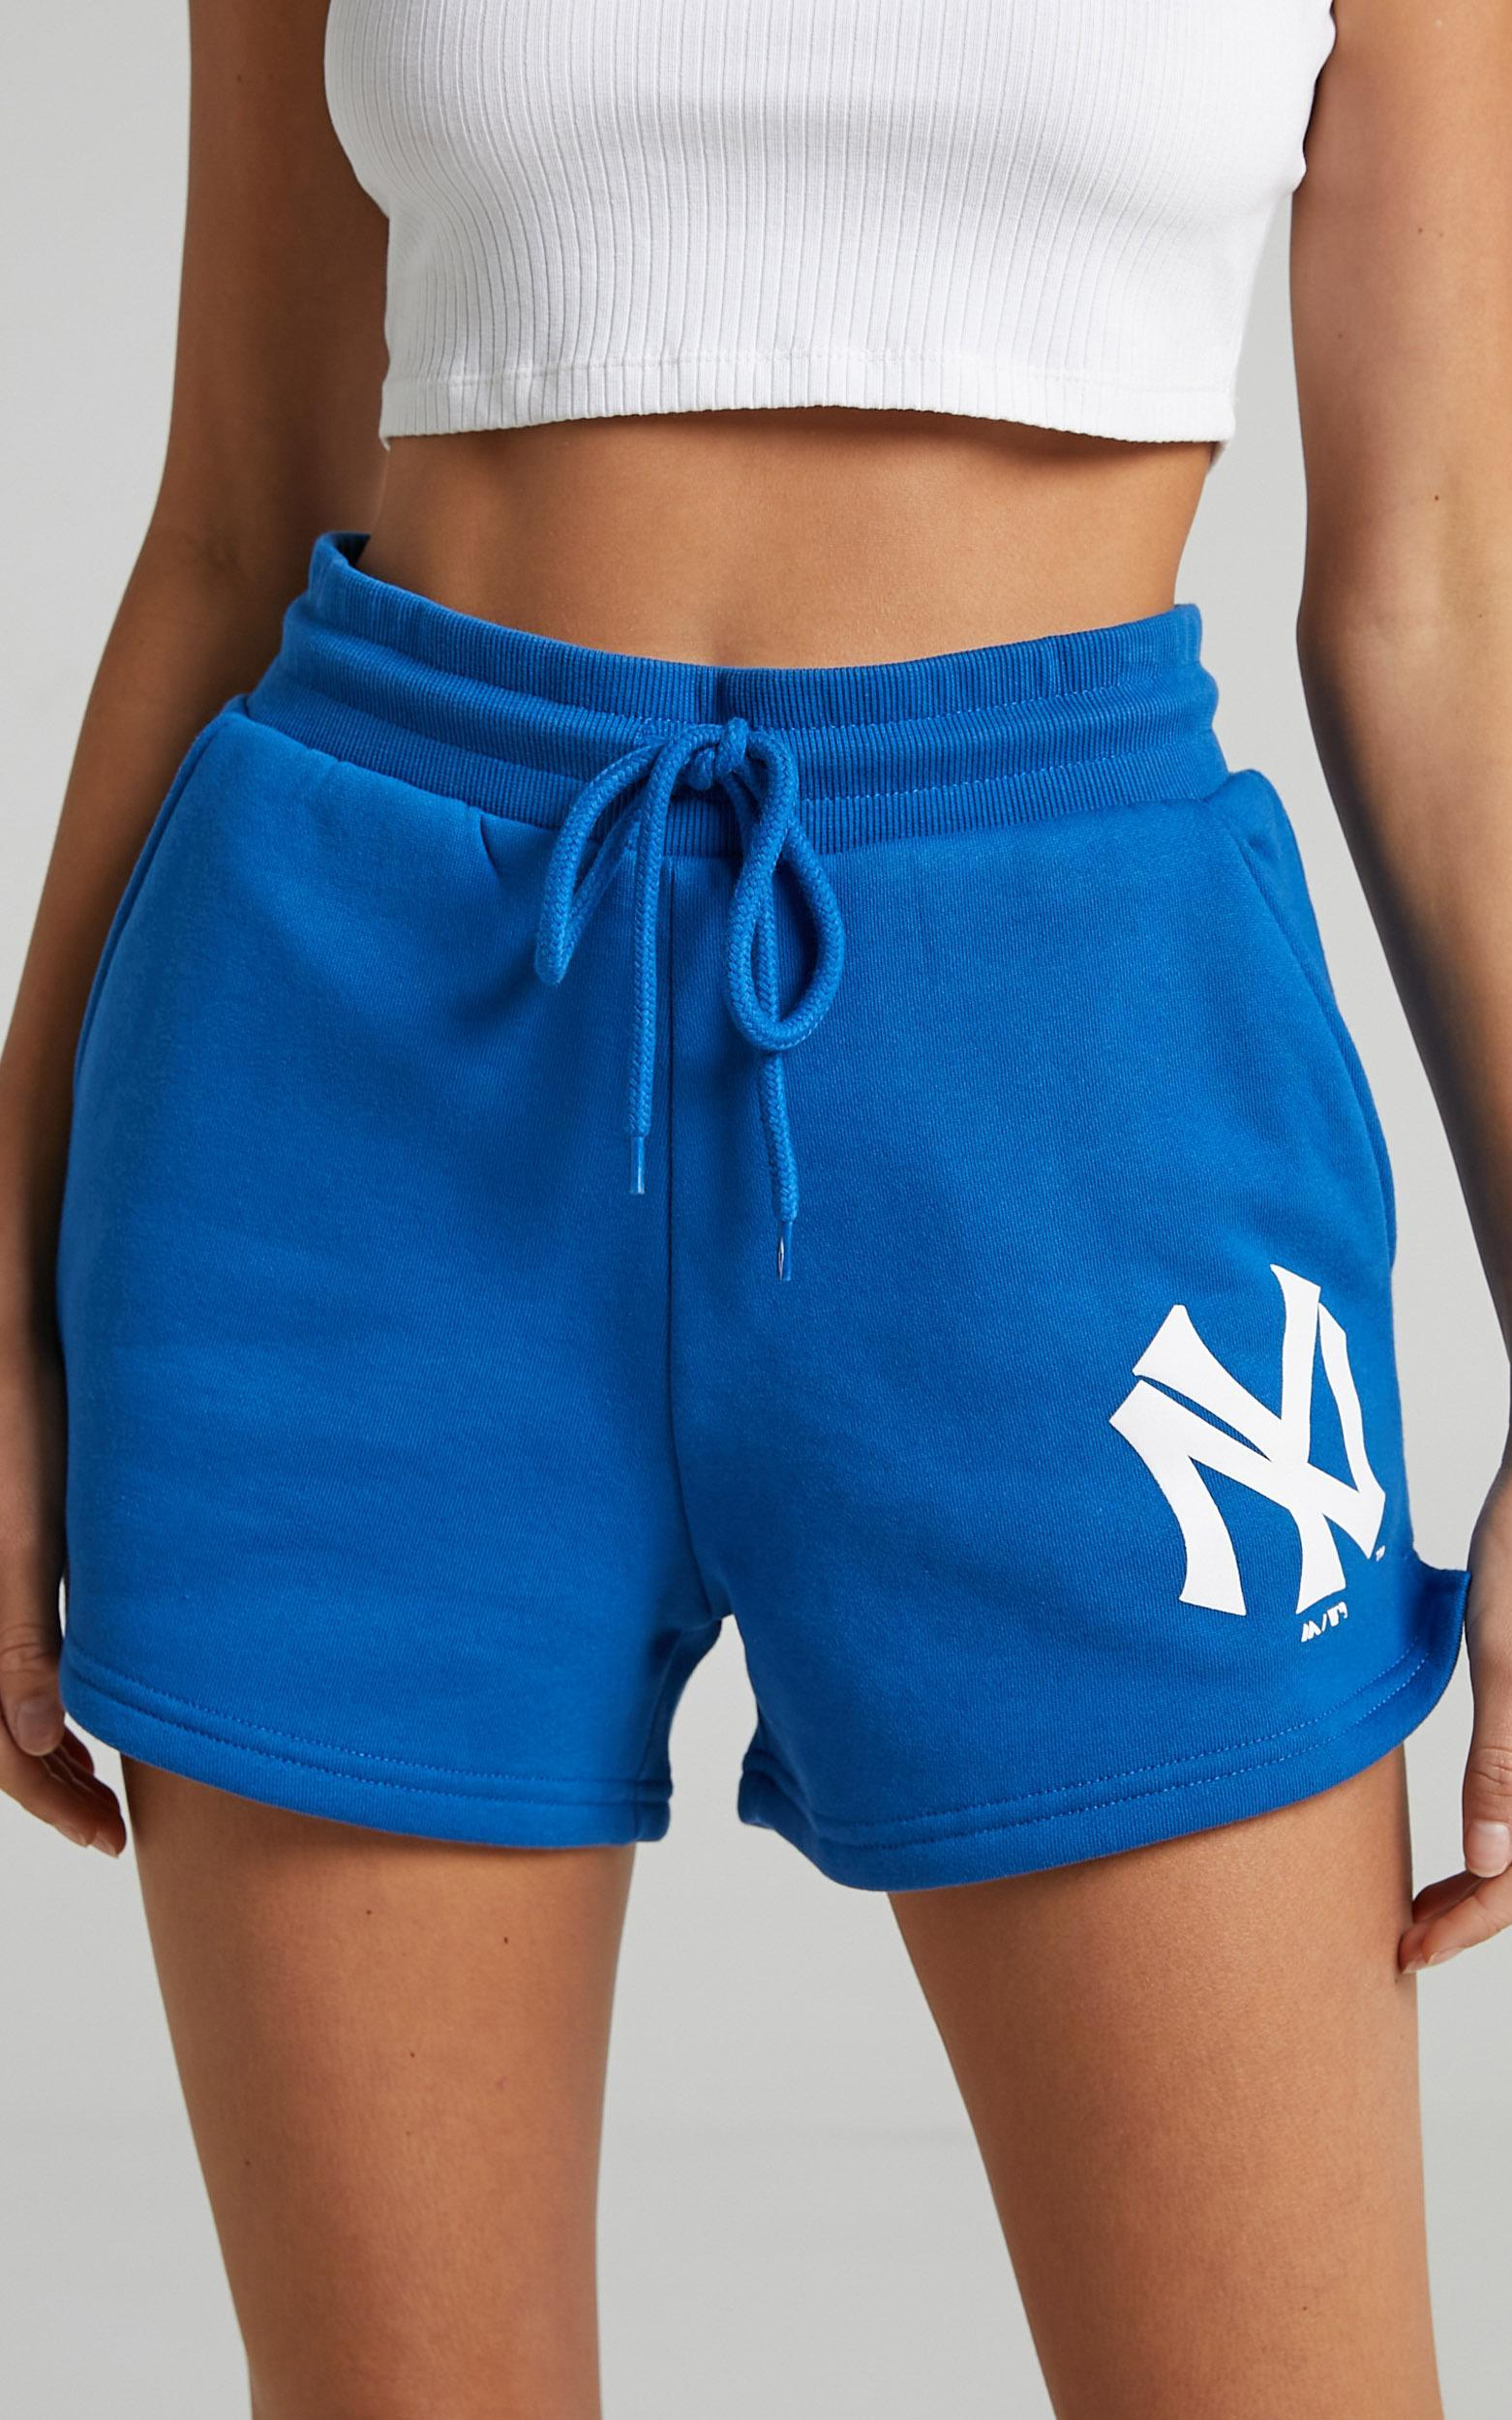 Majestic - Cali NY Yankees Track Shorts in Balenine Blue - XS, BLU1, hi-res image number null